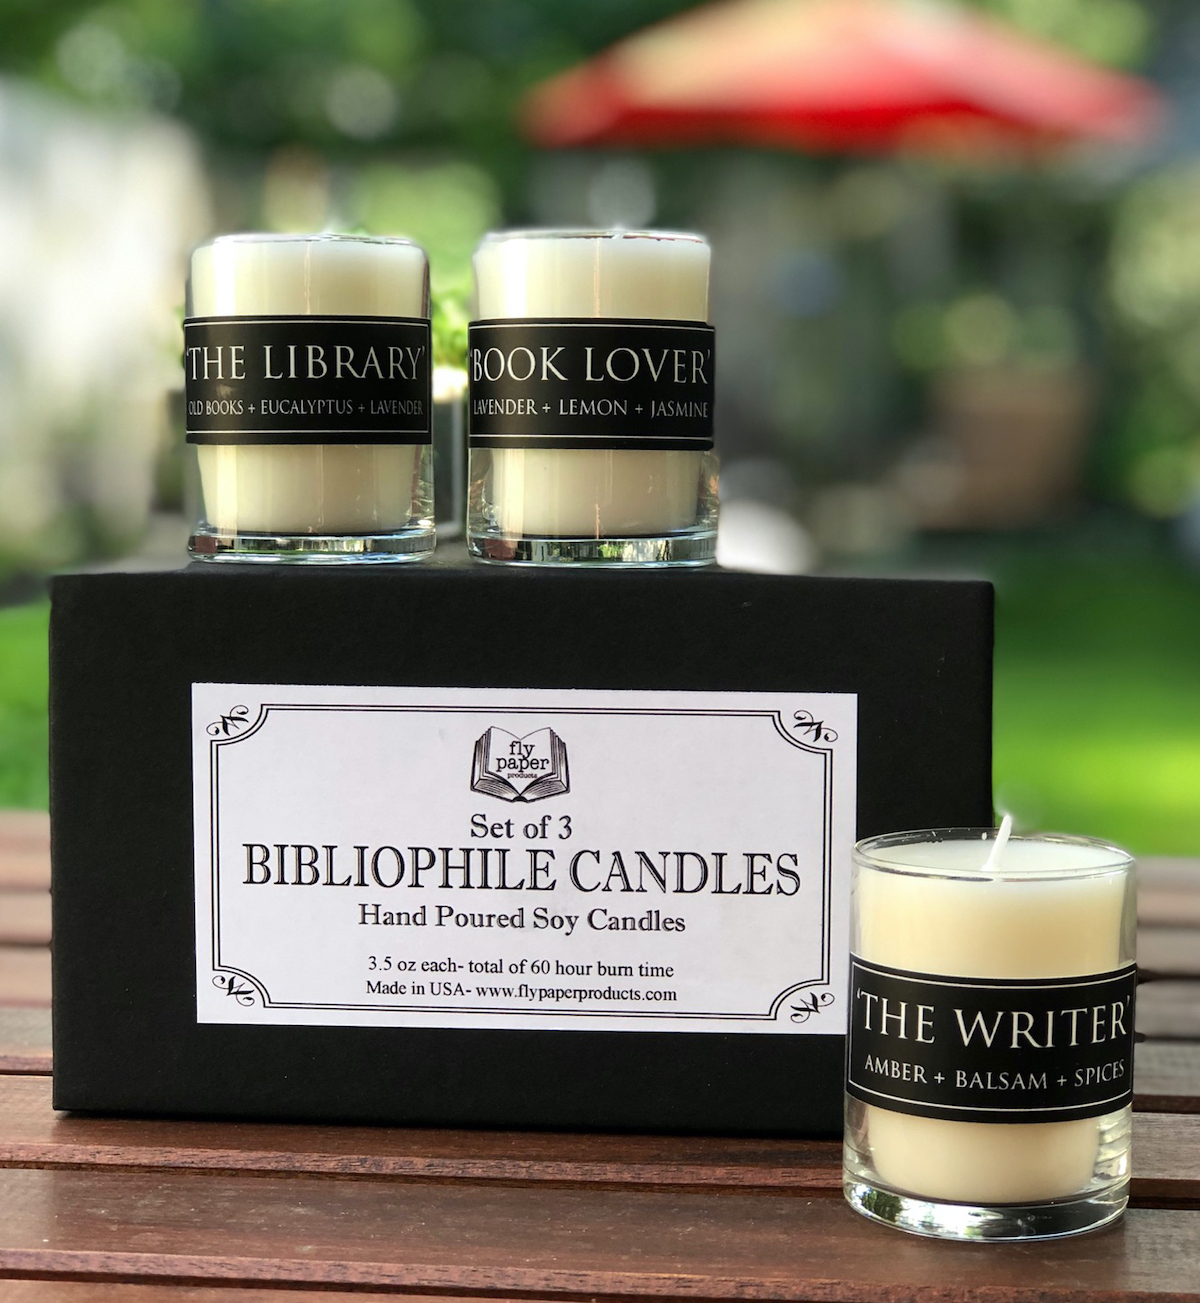 Book lover candles as an unusual but great shower gifts